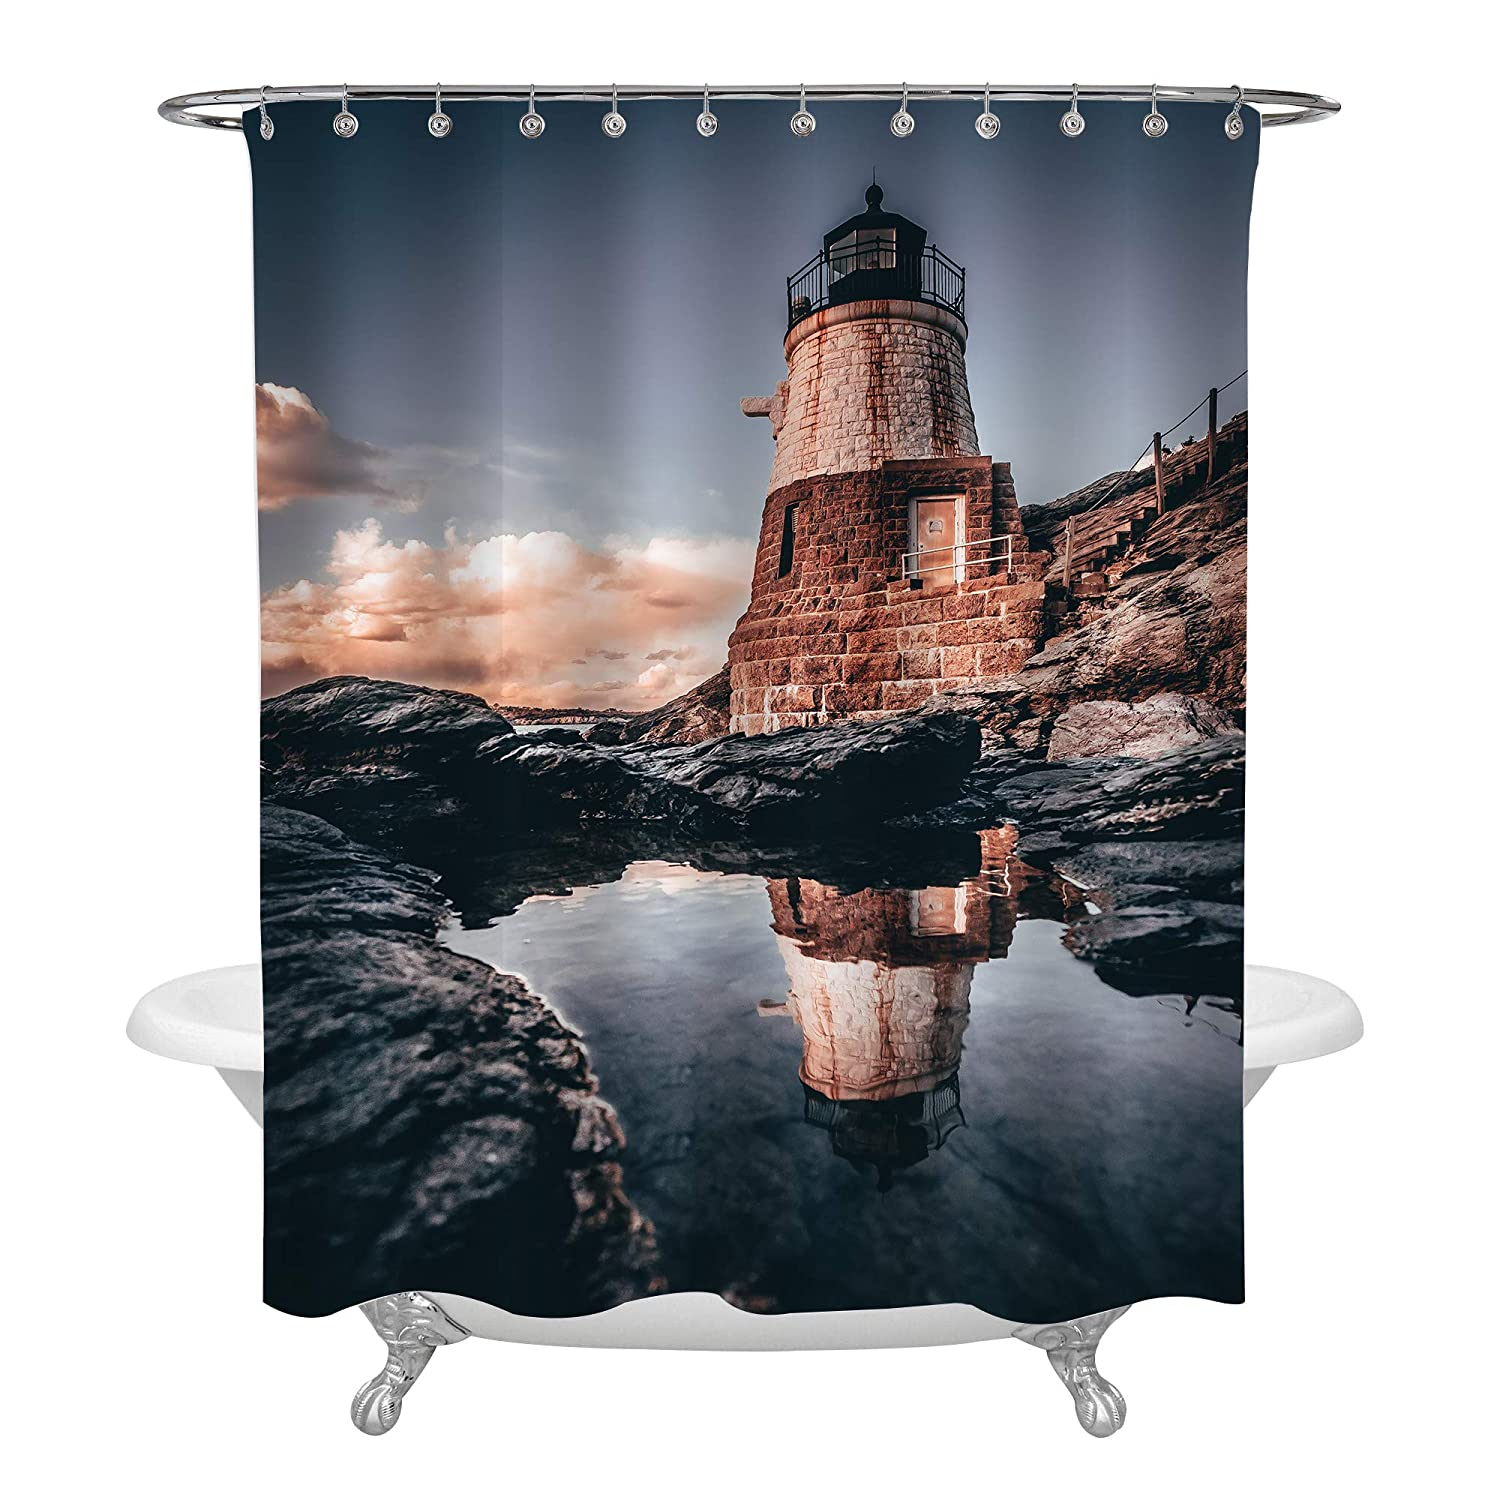 Easy Care 72 in Long Astronomy Party Supplies Galaxy Journey Outer Space Shower Curtain for Teens Children MitoVilla Spaceman Walking on Moon with Earth in Background Picture Room Accessories Set